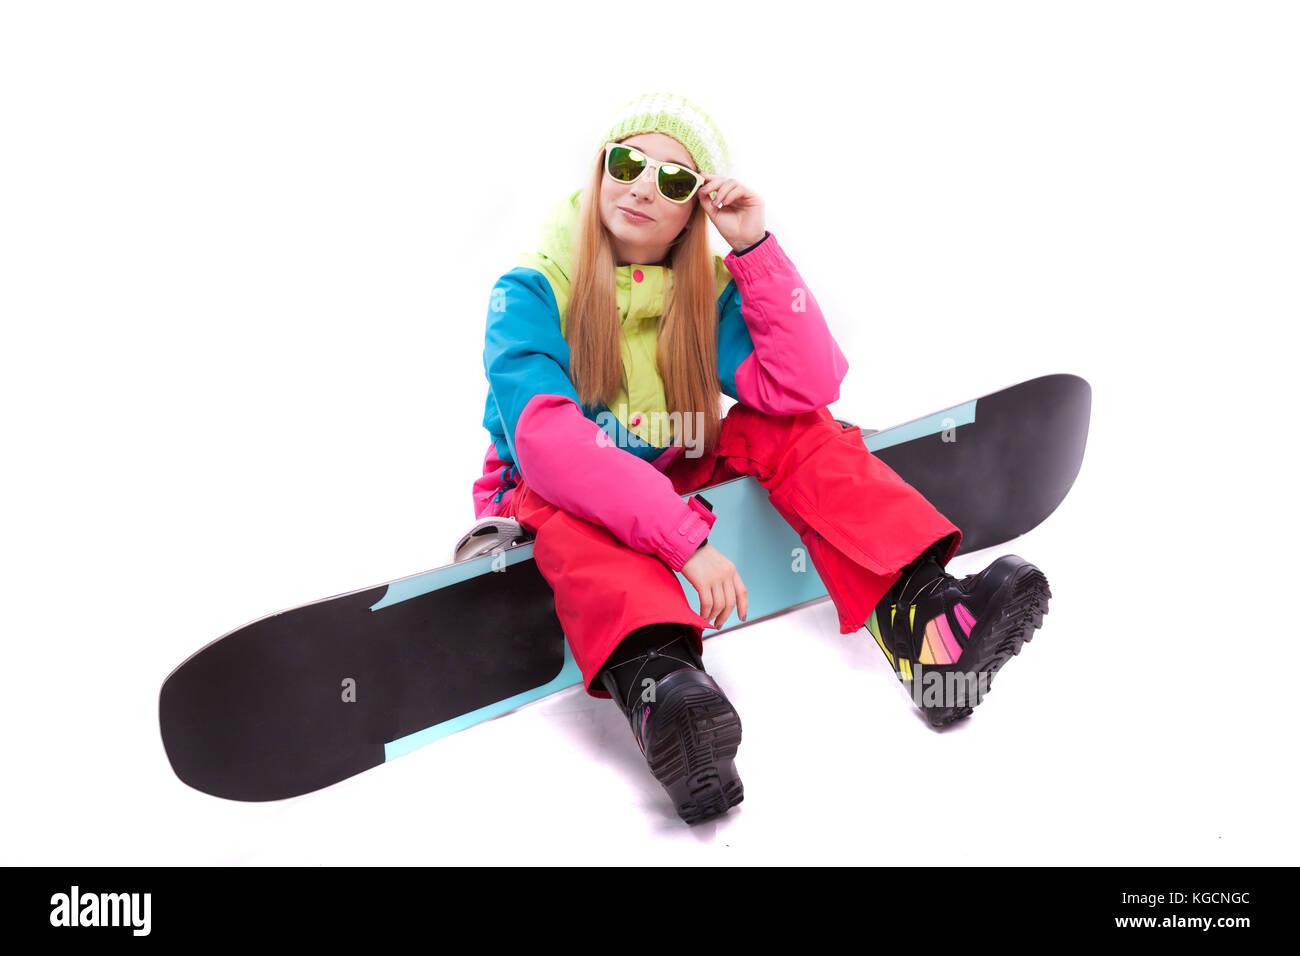 pretty young woman in ski outfit and sunglasses hold snowboard - Stock Image